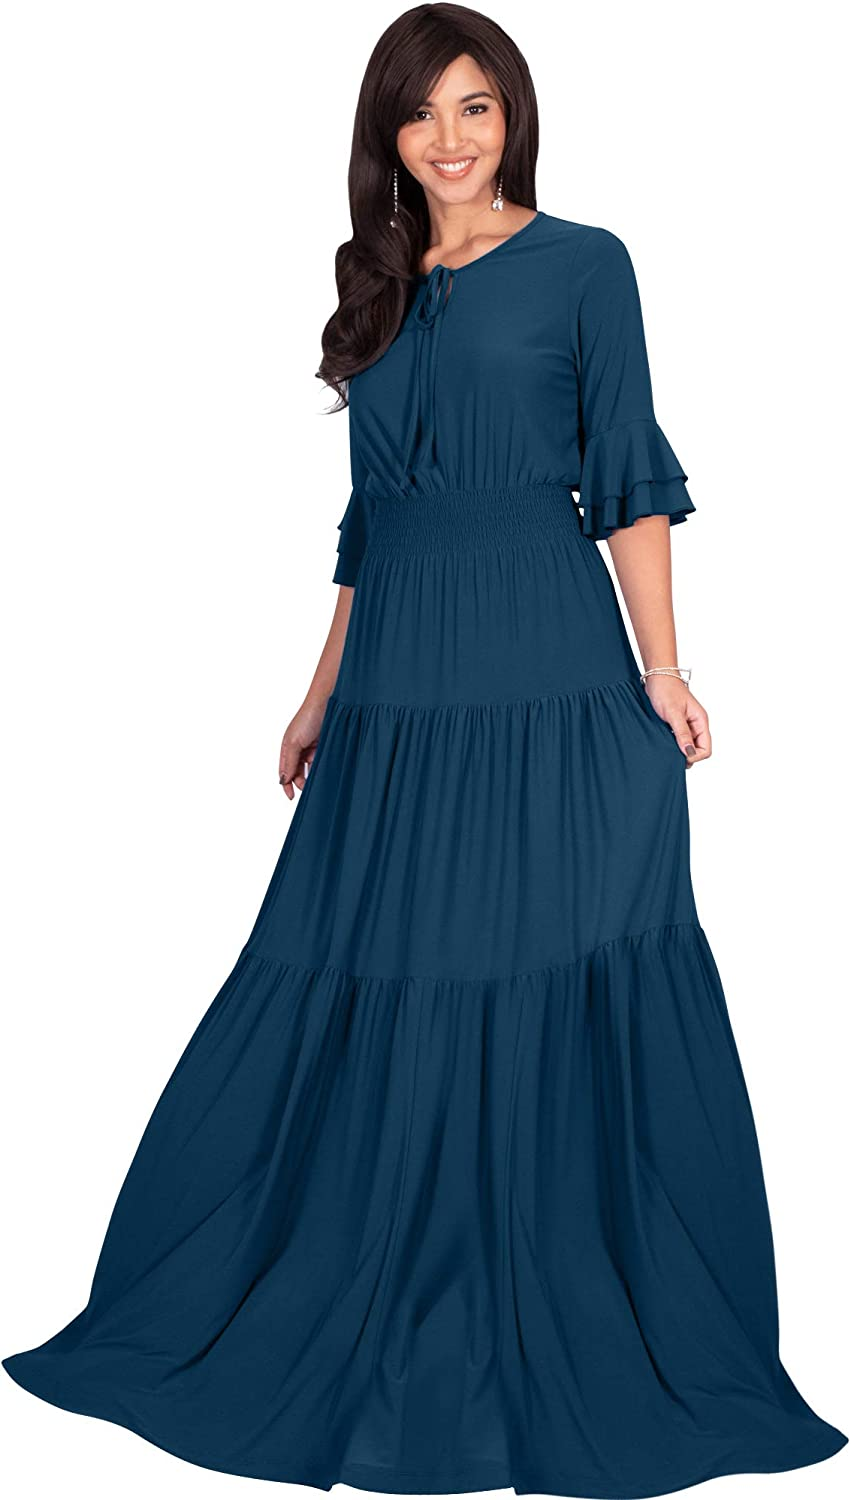 Cottagecore Dresses Aesthetic, Granny, Vintage KOH KOH Womens Boho Casual Modern Vintage Design Loose Peasant Gown Maxi Dress $44.95 AT vintagedancer.com